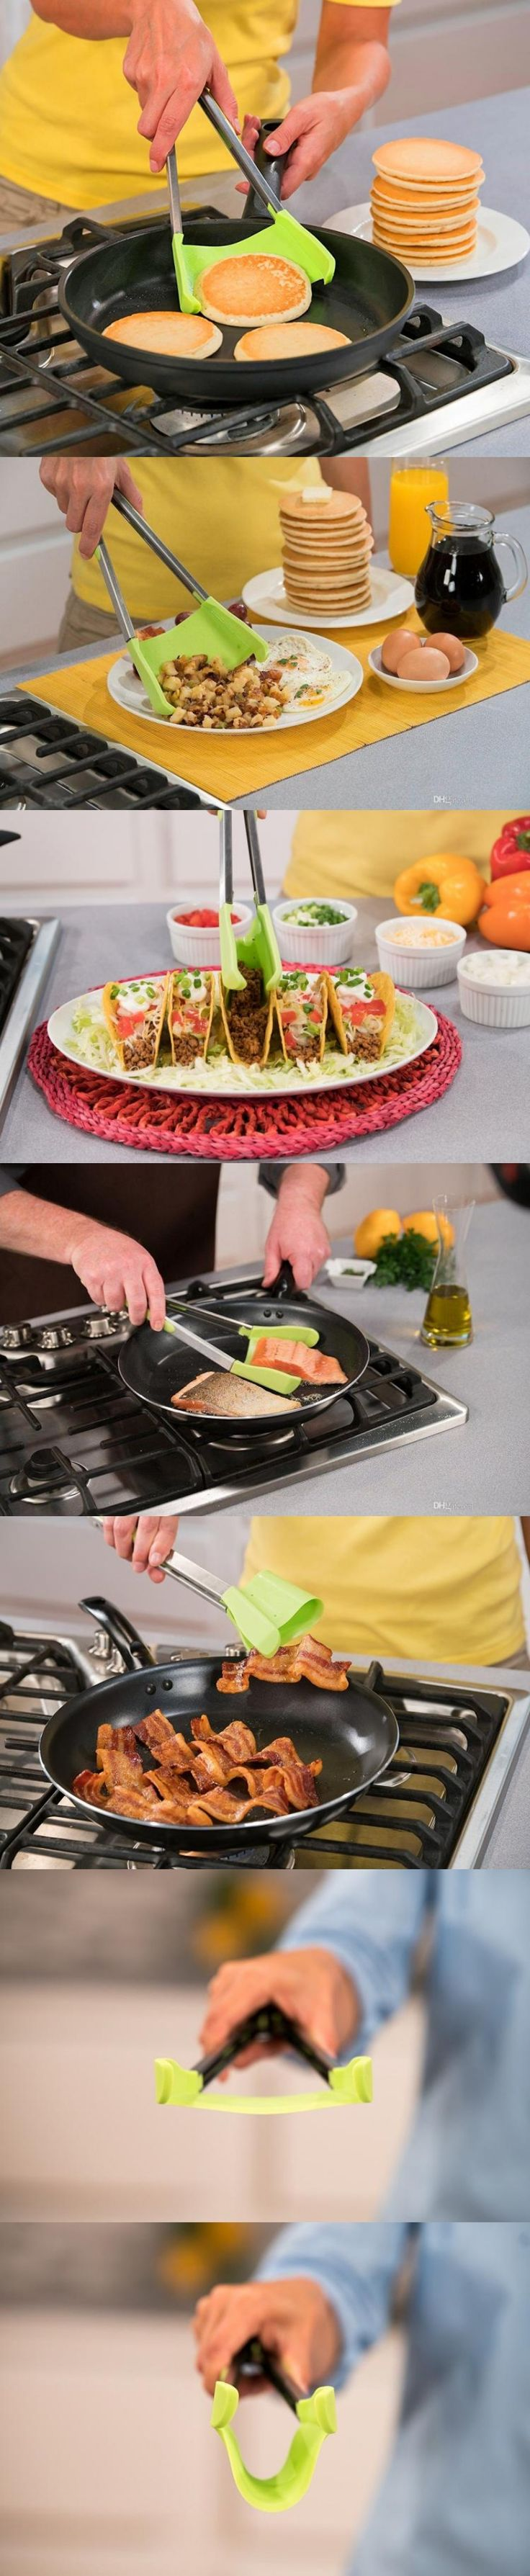 Brilliant kitchen tool combines tongs with a spatula!